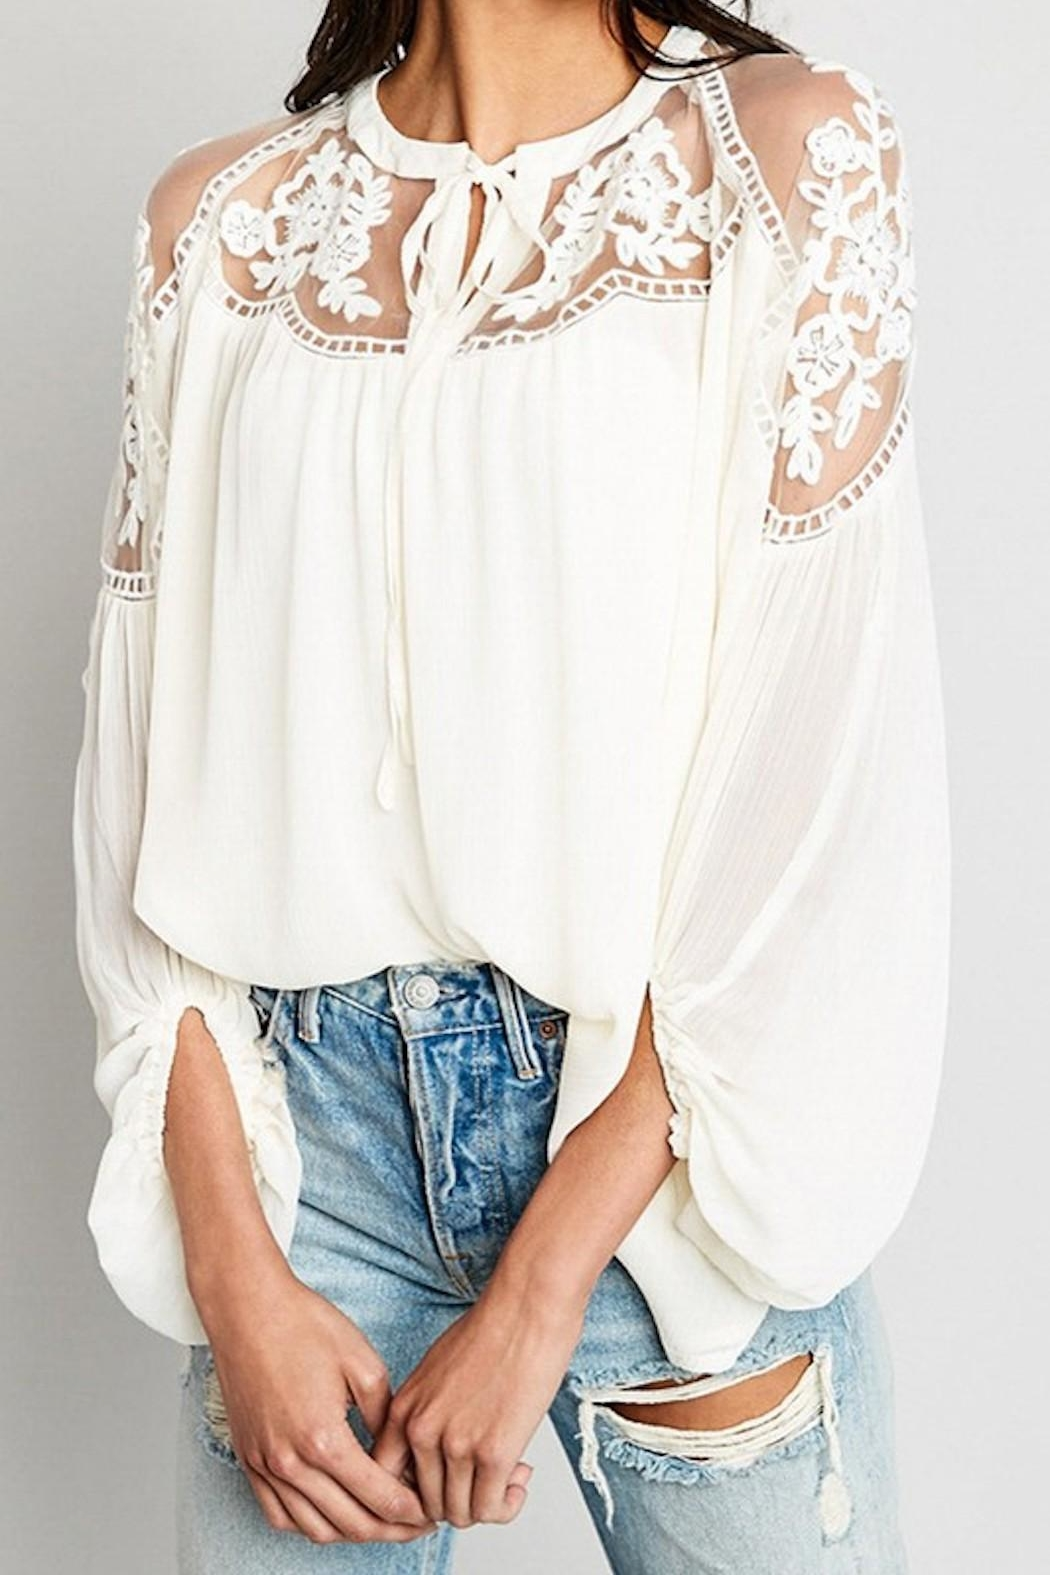 Hayden Los Angeles Sheer-And-Lace Peasant Blouse - Main Image